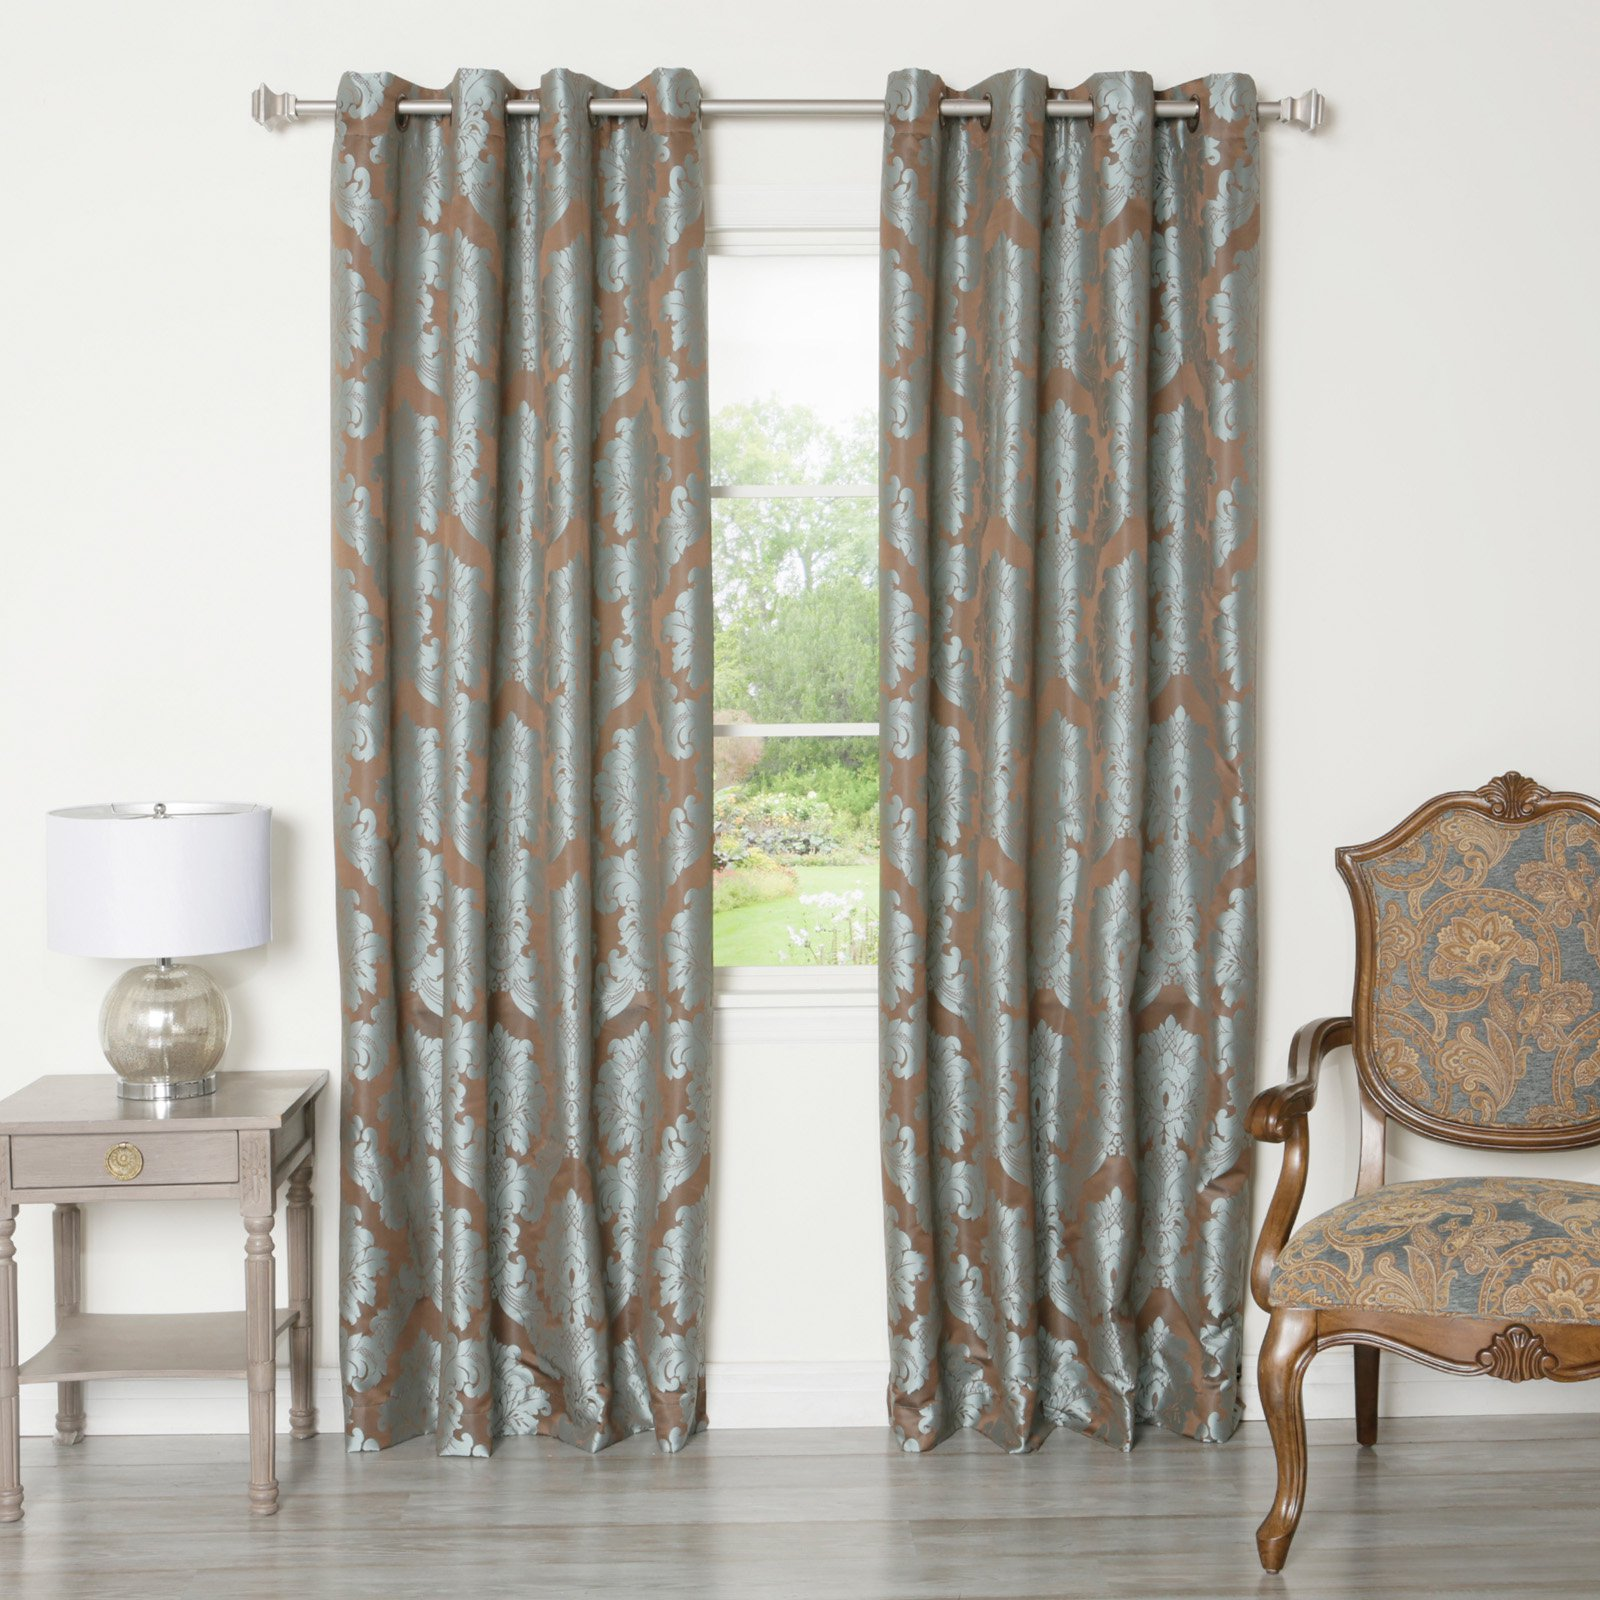 Best Home Fashion Damask Jacquard Grommet Top Curtain Panels